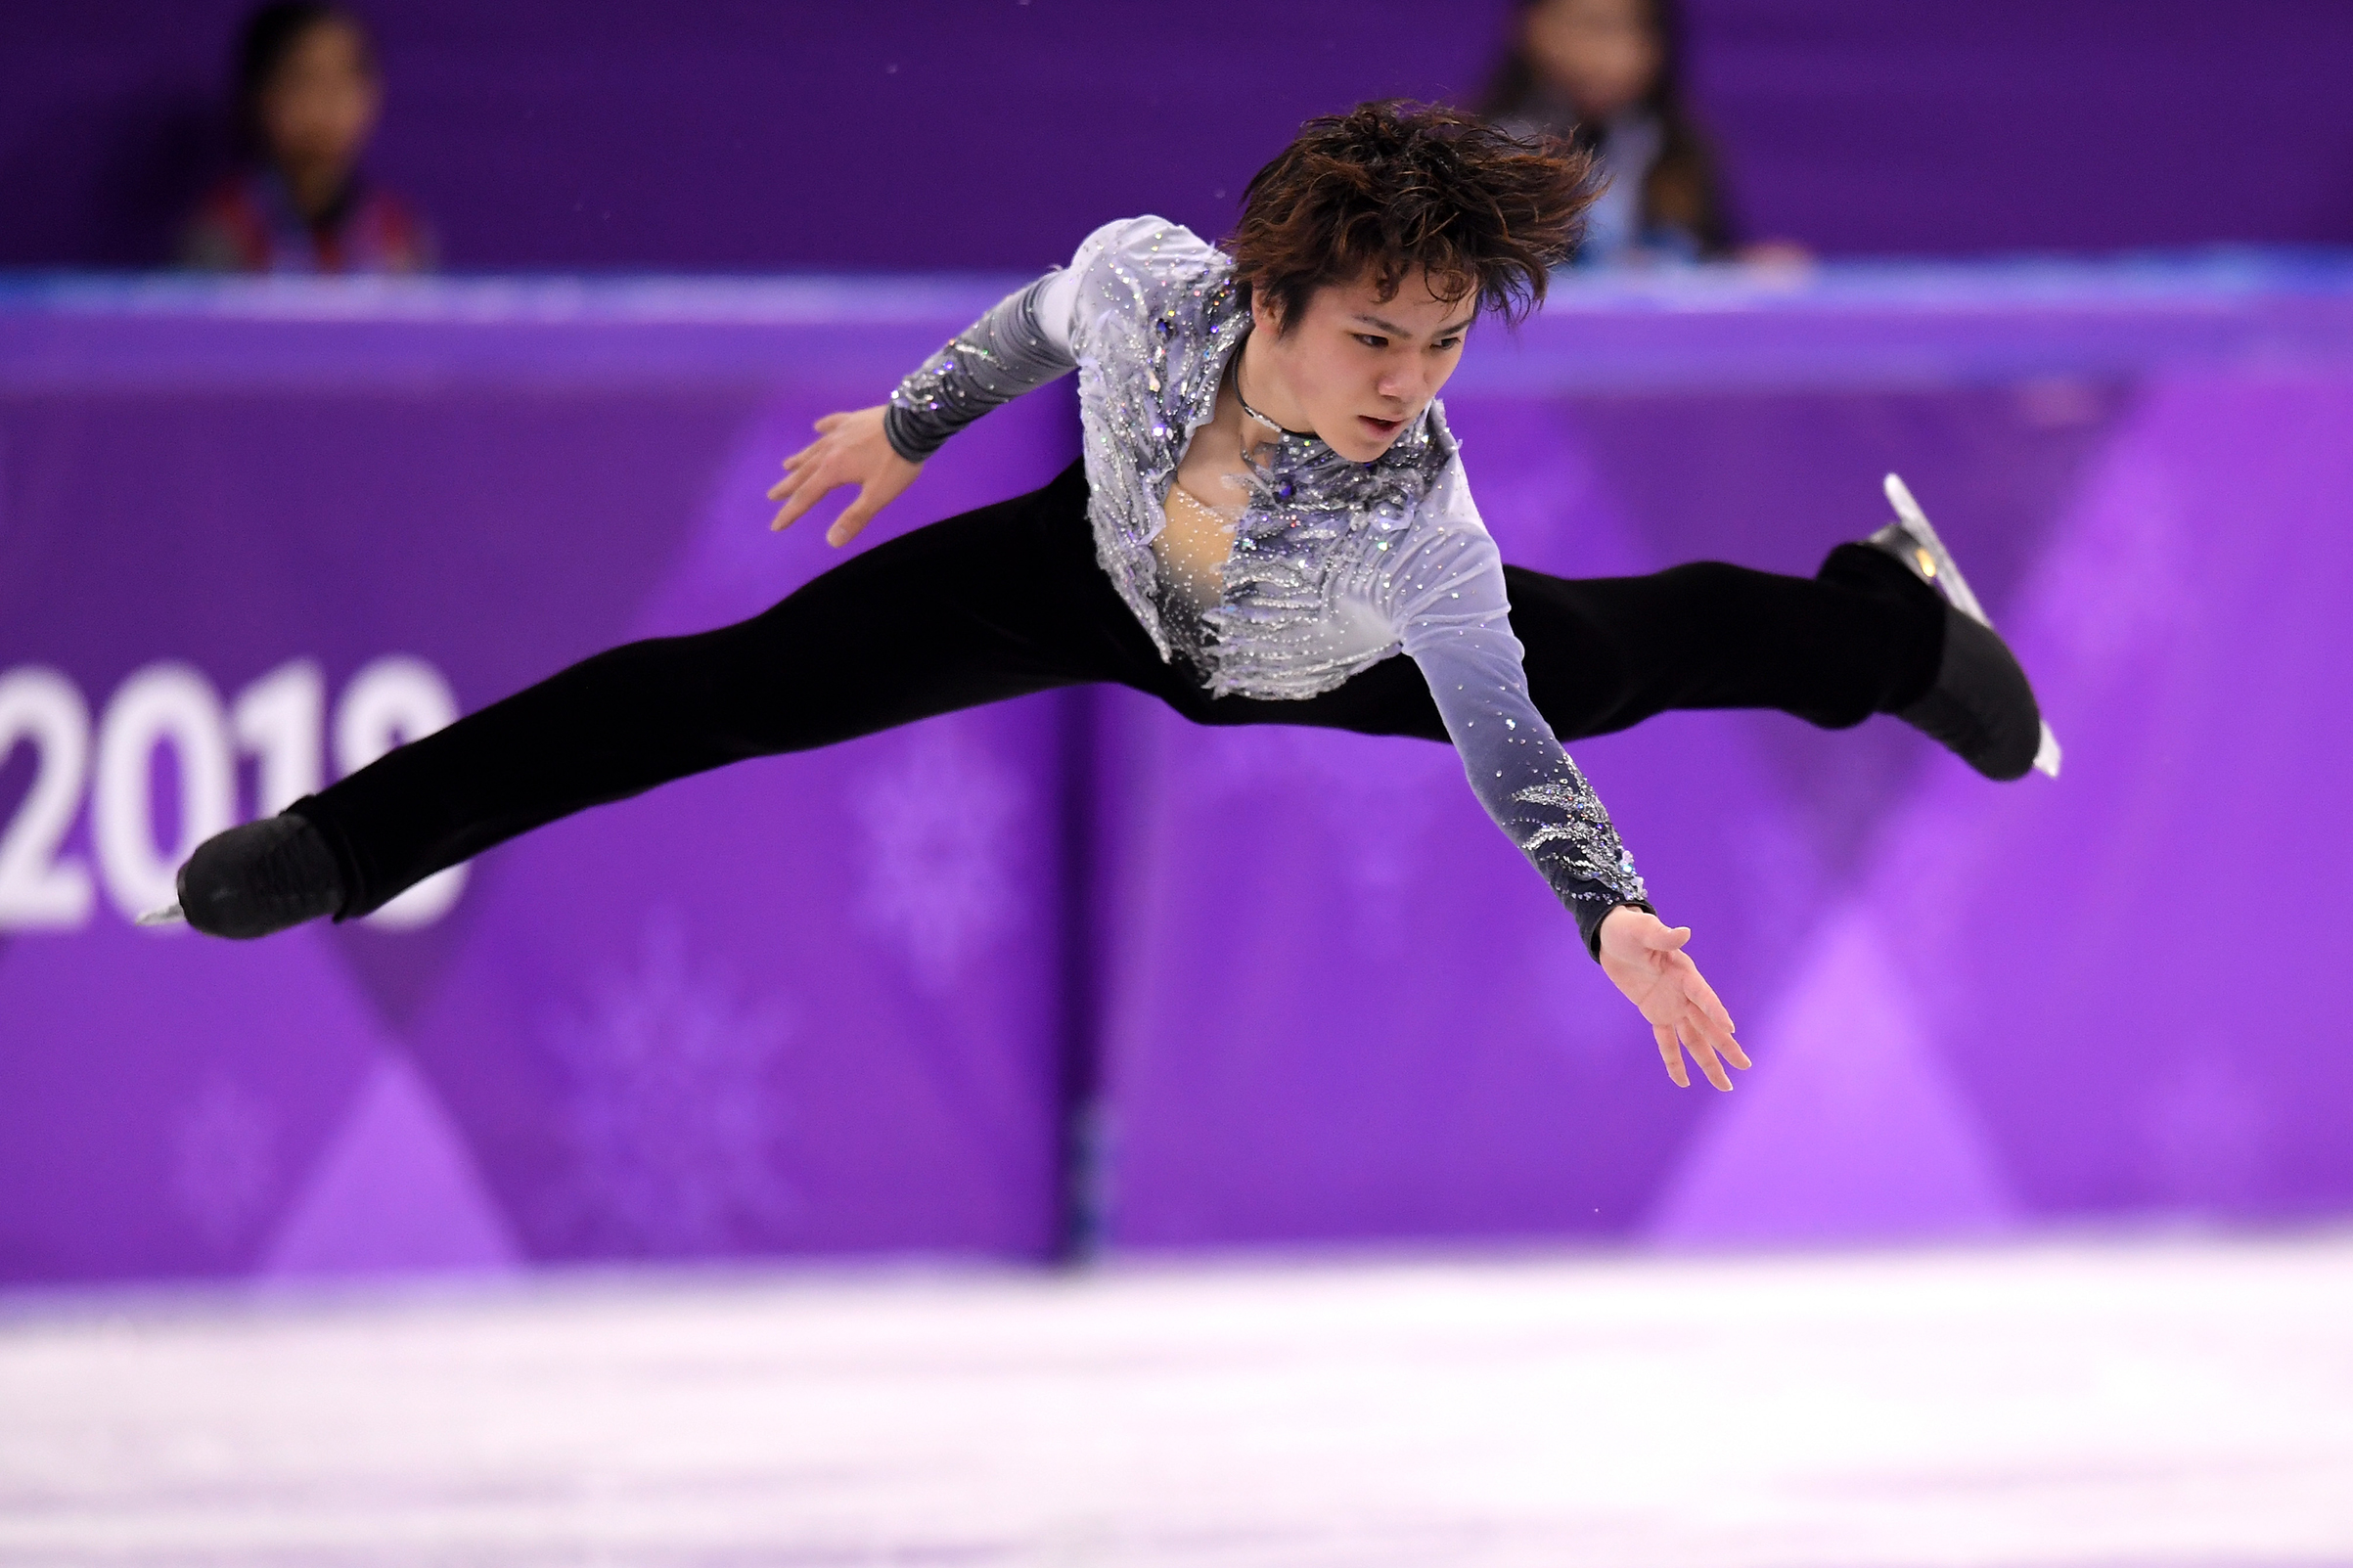 Shoma Uno of Japan competes during the Men's Single Skating Short Program at Gangneung Ice Arena on Feb. 16, 2018 in Gangneung, South Korea.